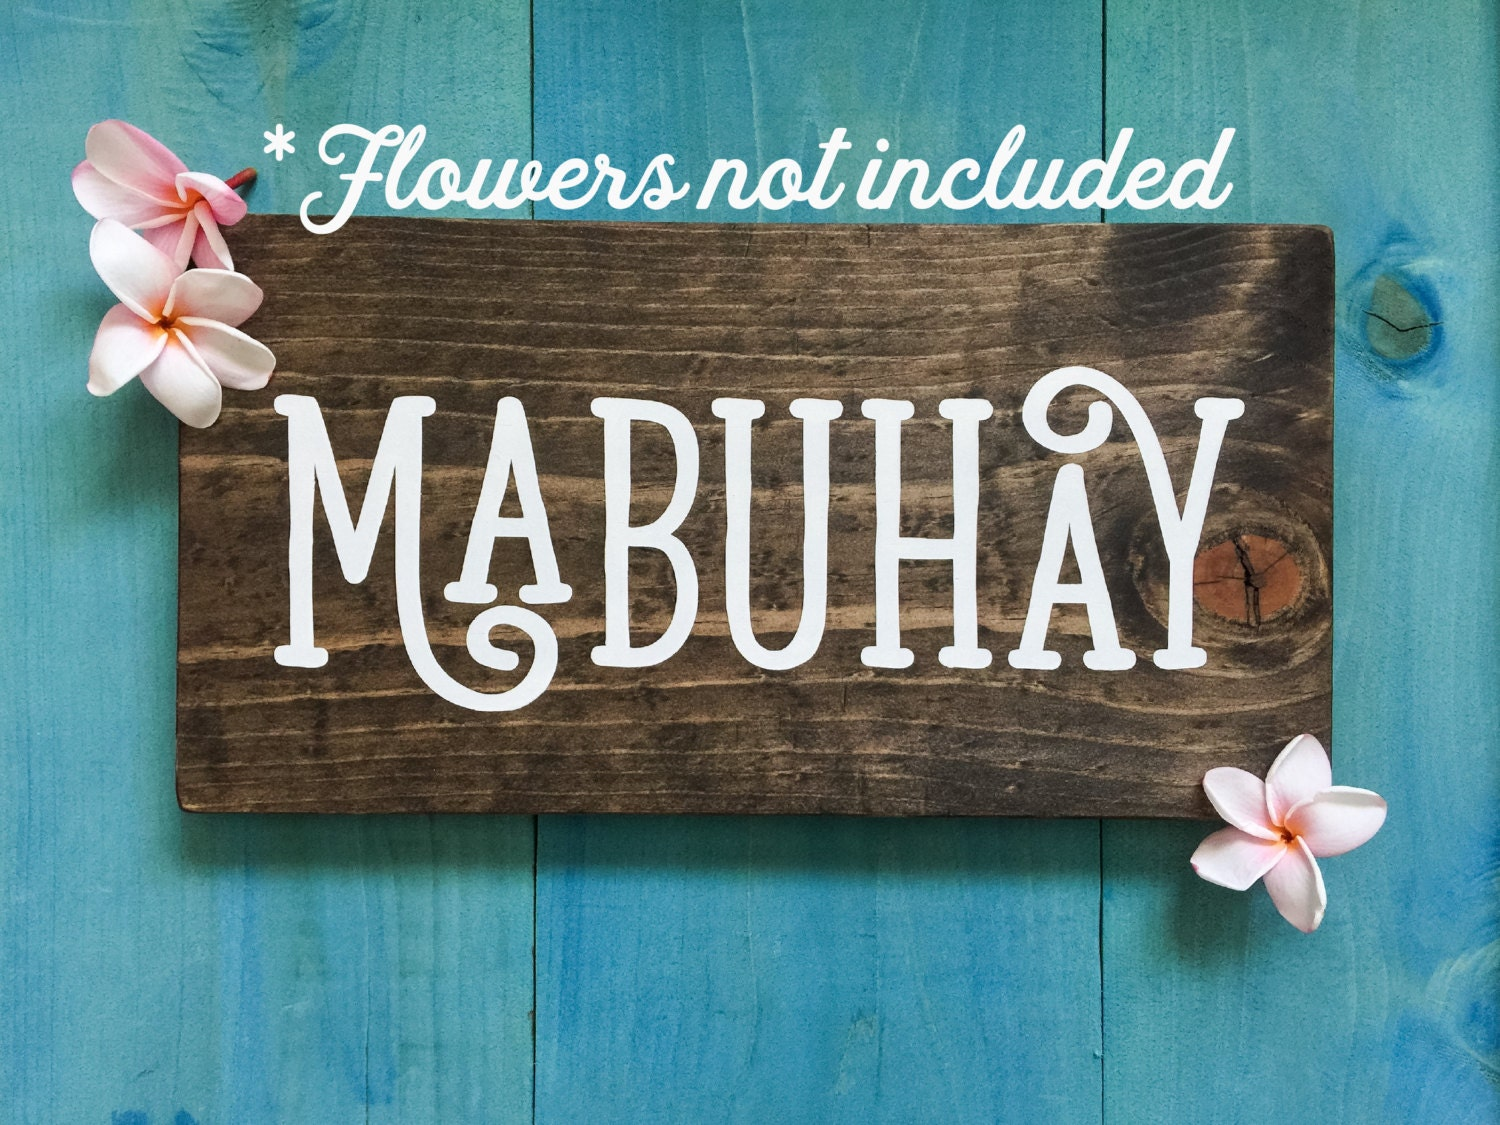 Dog crib for sale philippines - Mabuhay Wood Sign With No Flowers Wooden Sign Sign Of Hospitality Filipino Decor Wall Decor Philippines Hello Tagalog